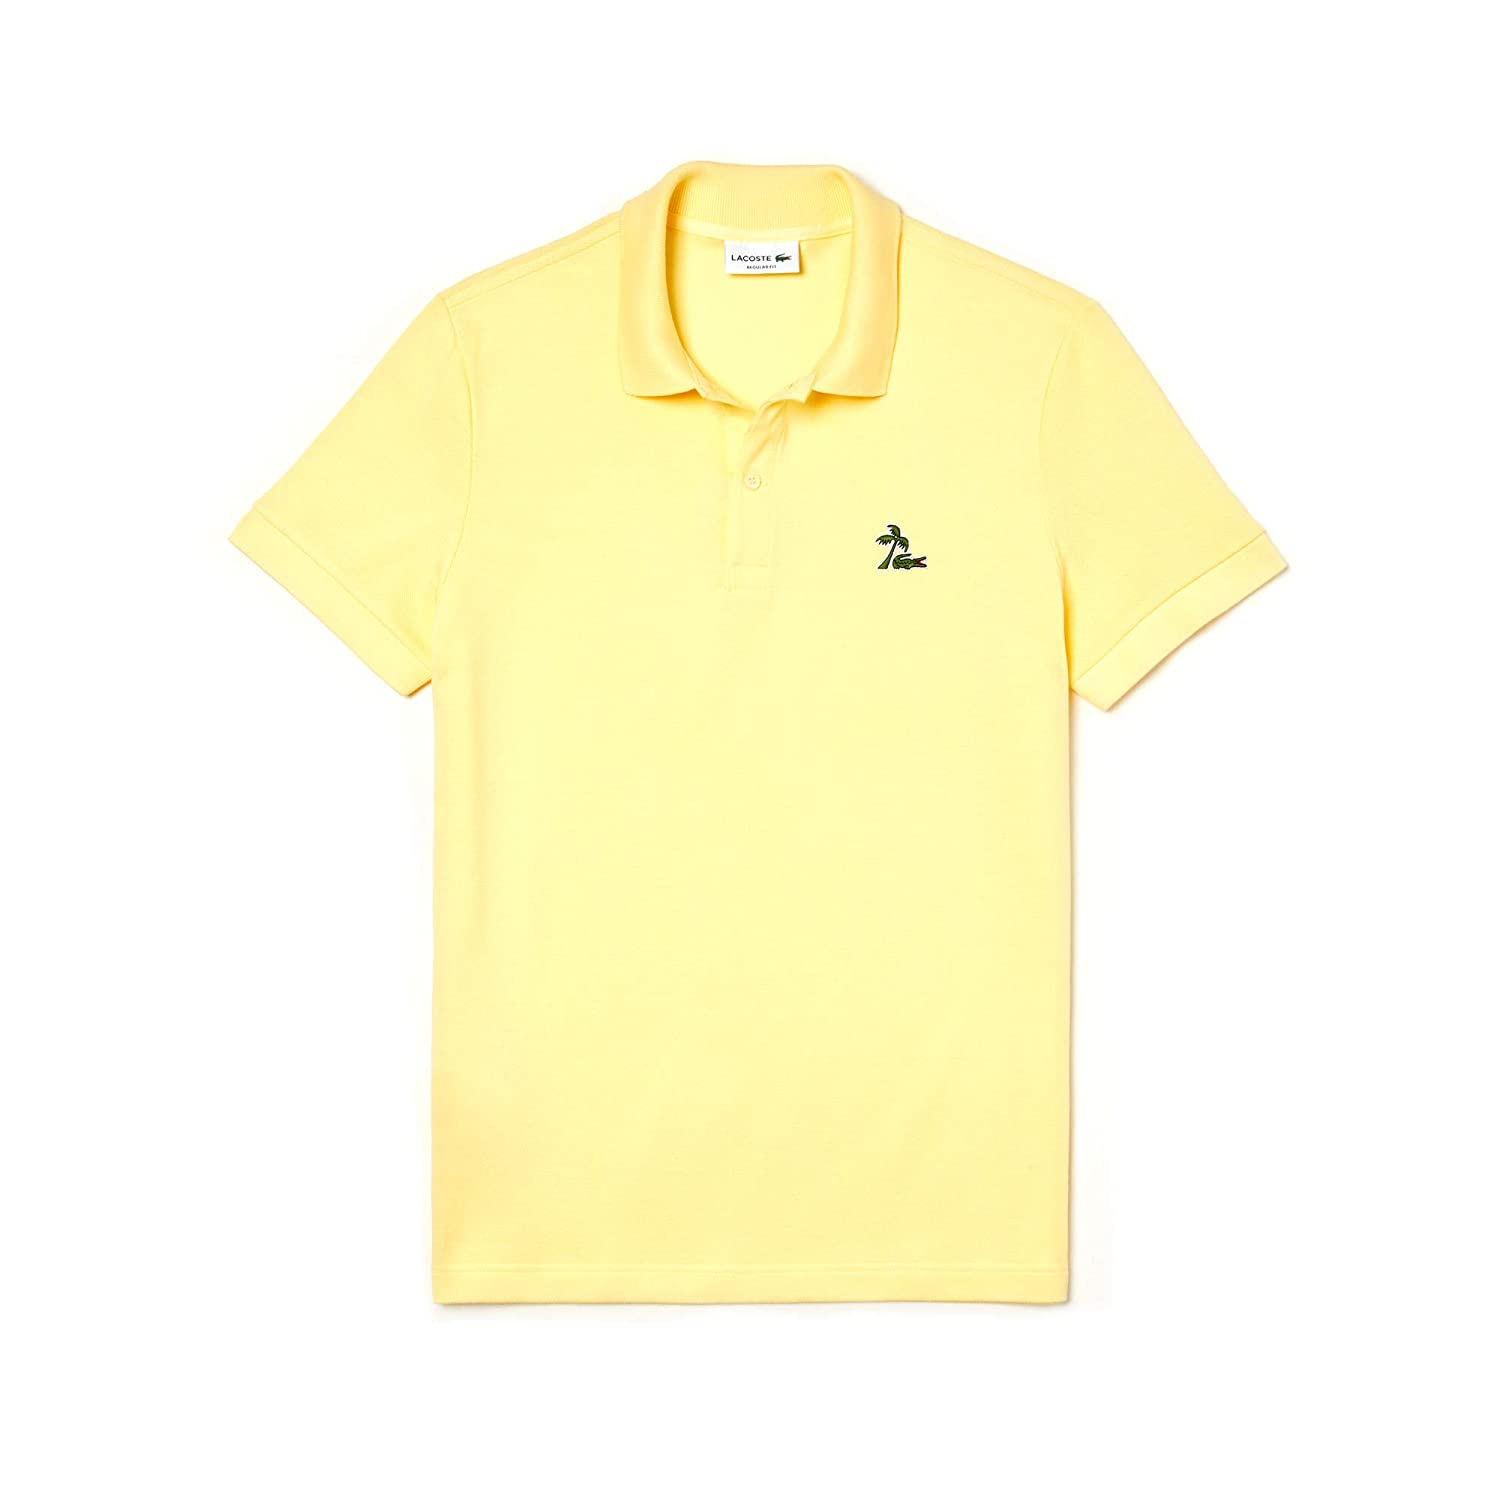 Jaune S Lacoste Polo Homme